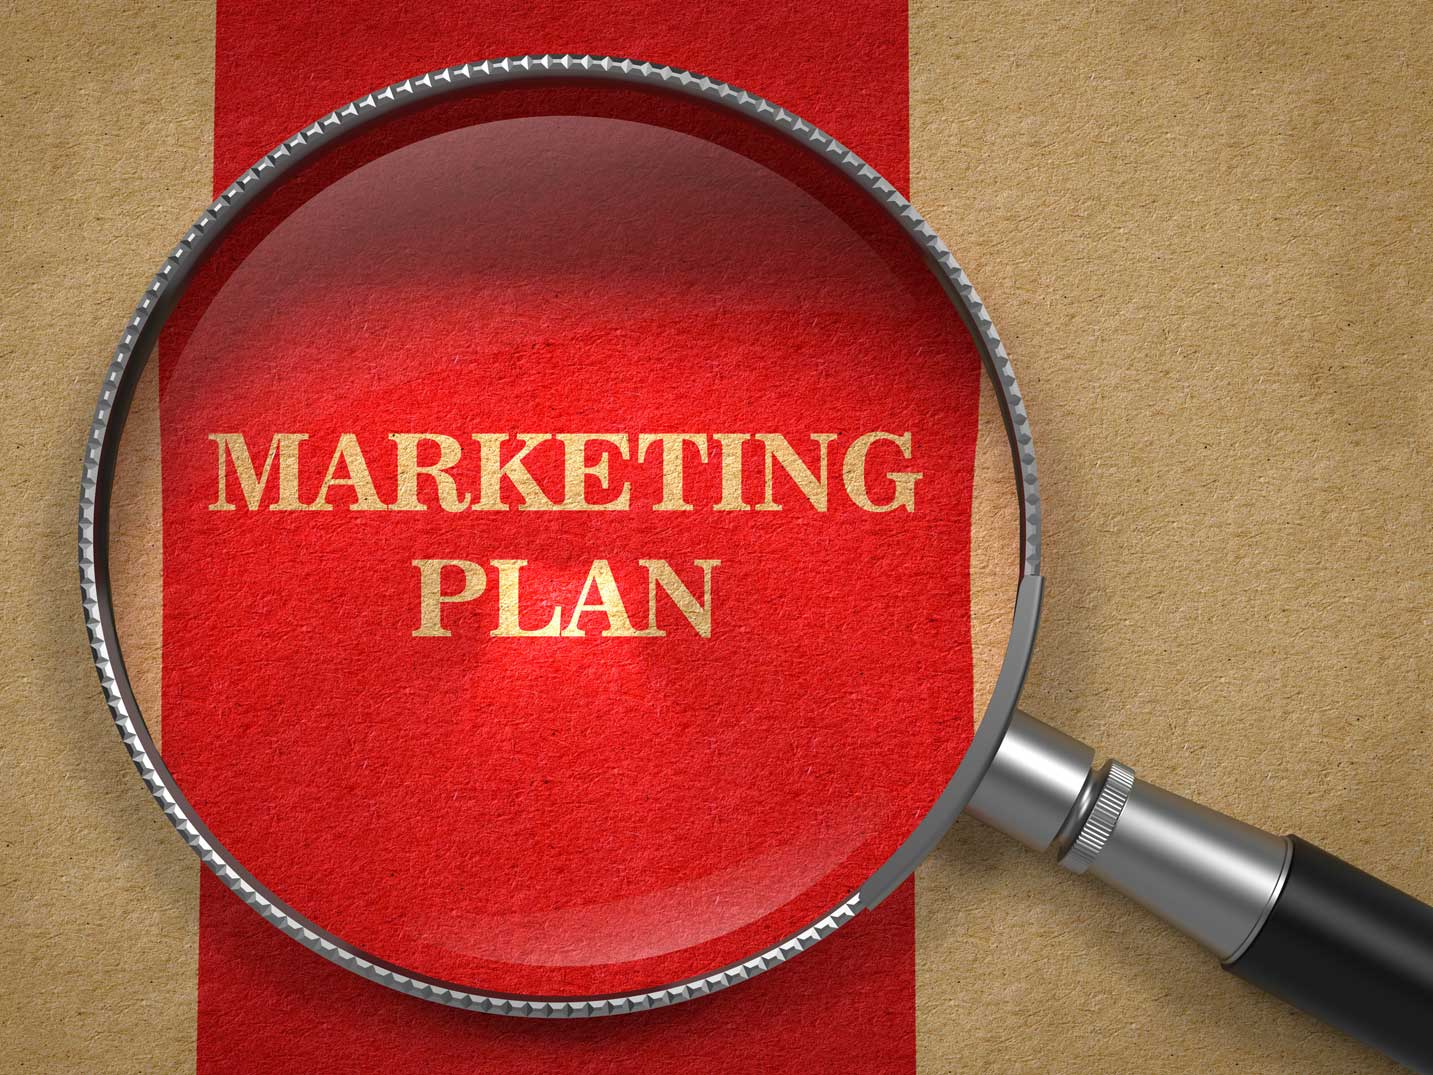 Marketing Plan For Small Businesses